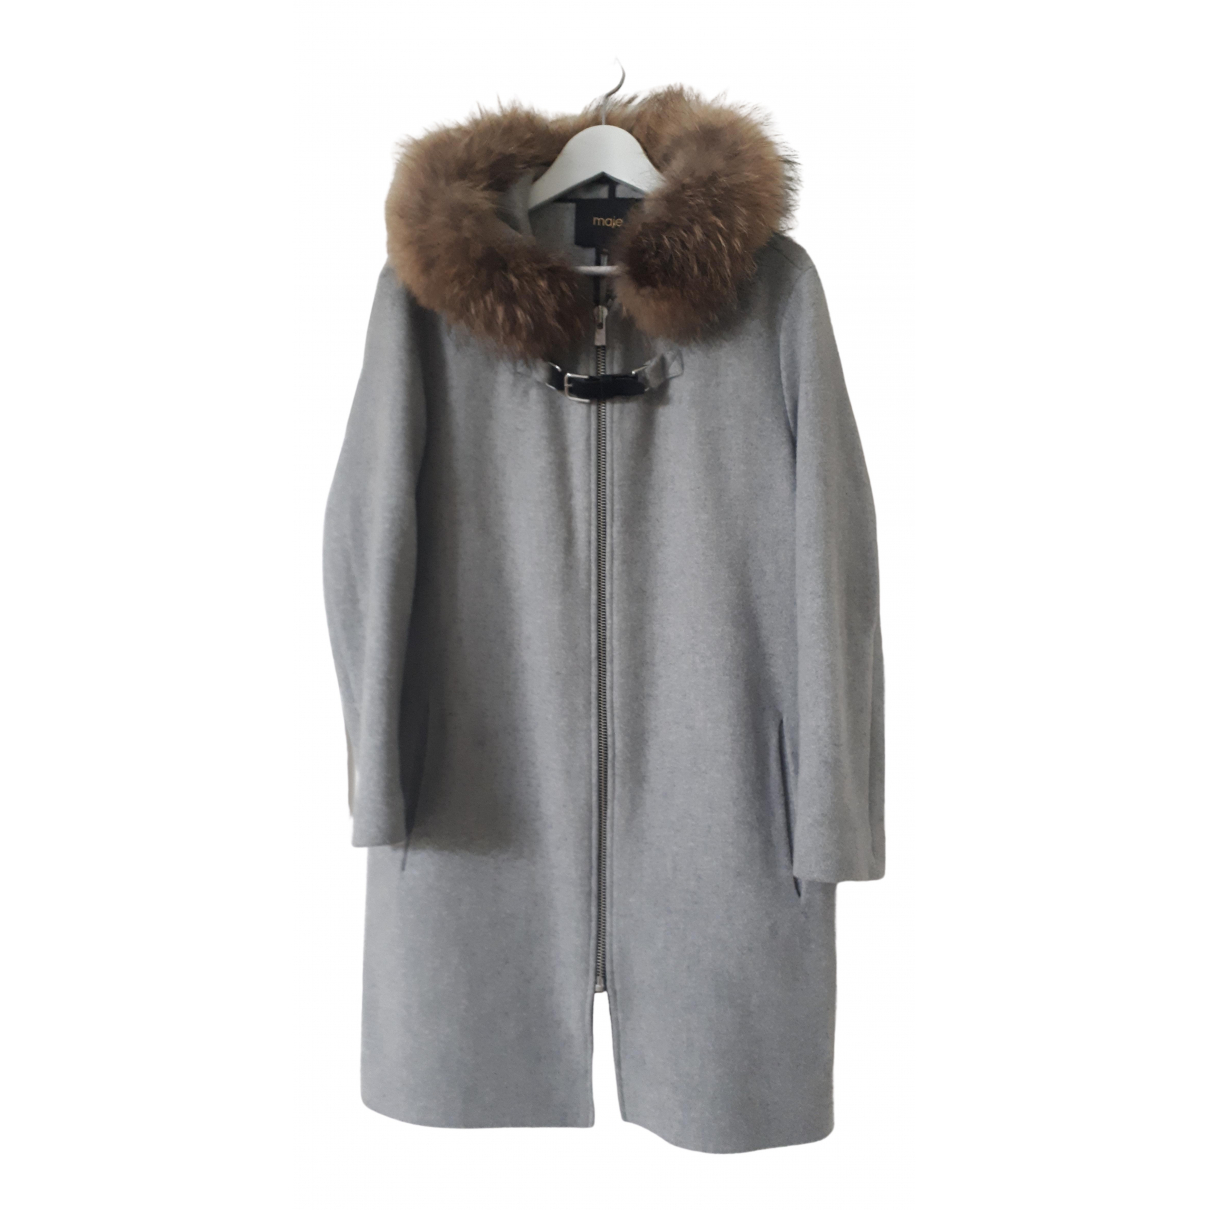 Maje N Grey Wool coat for Women 40 FR